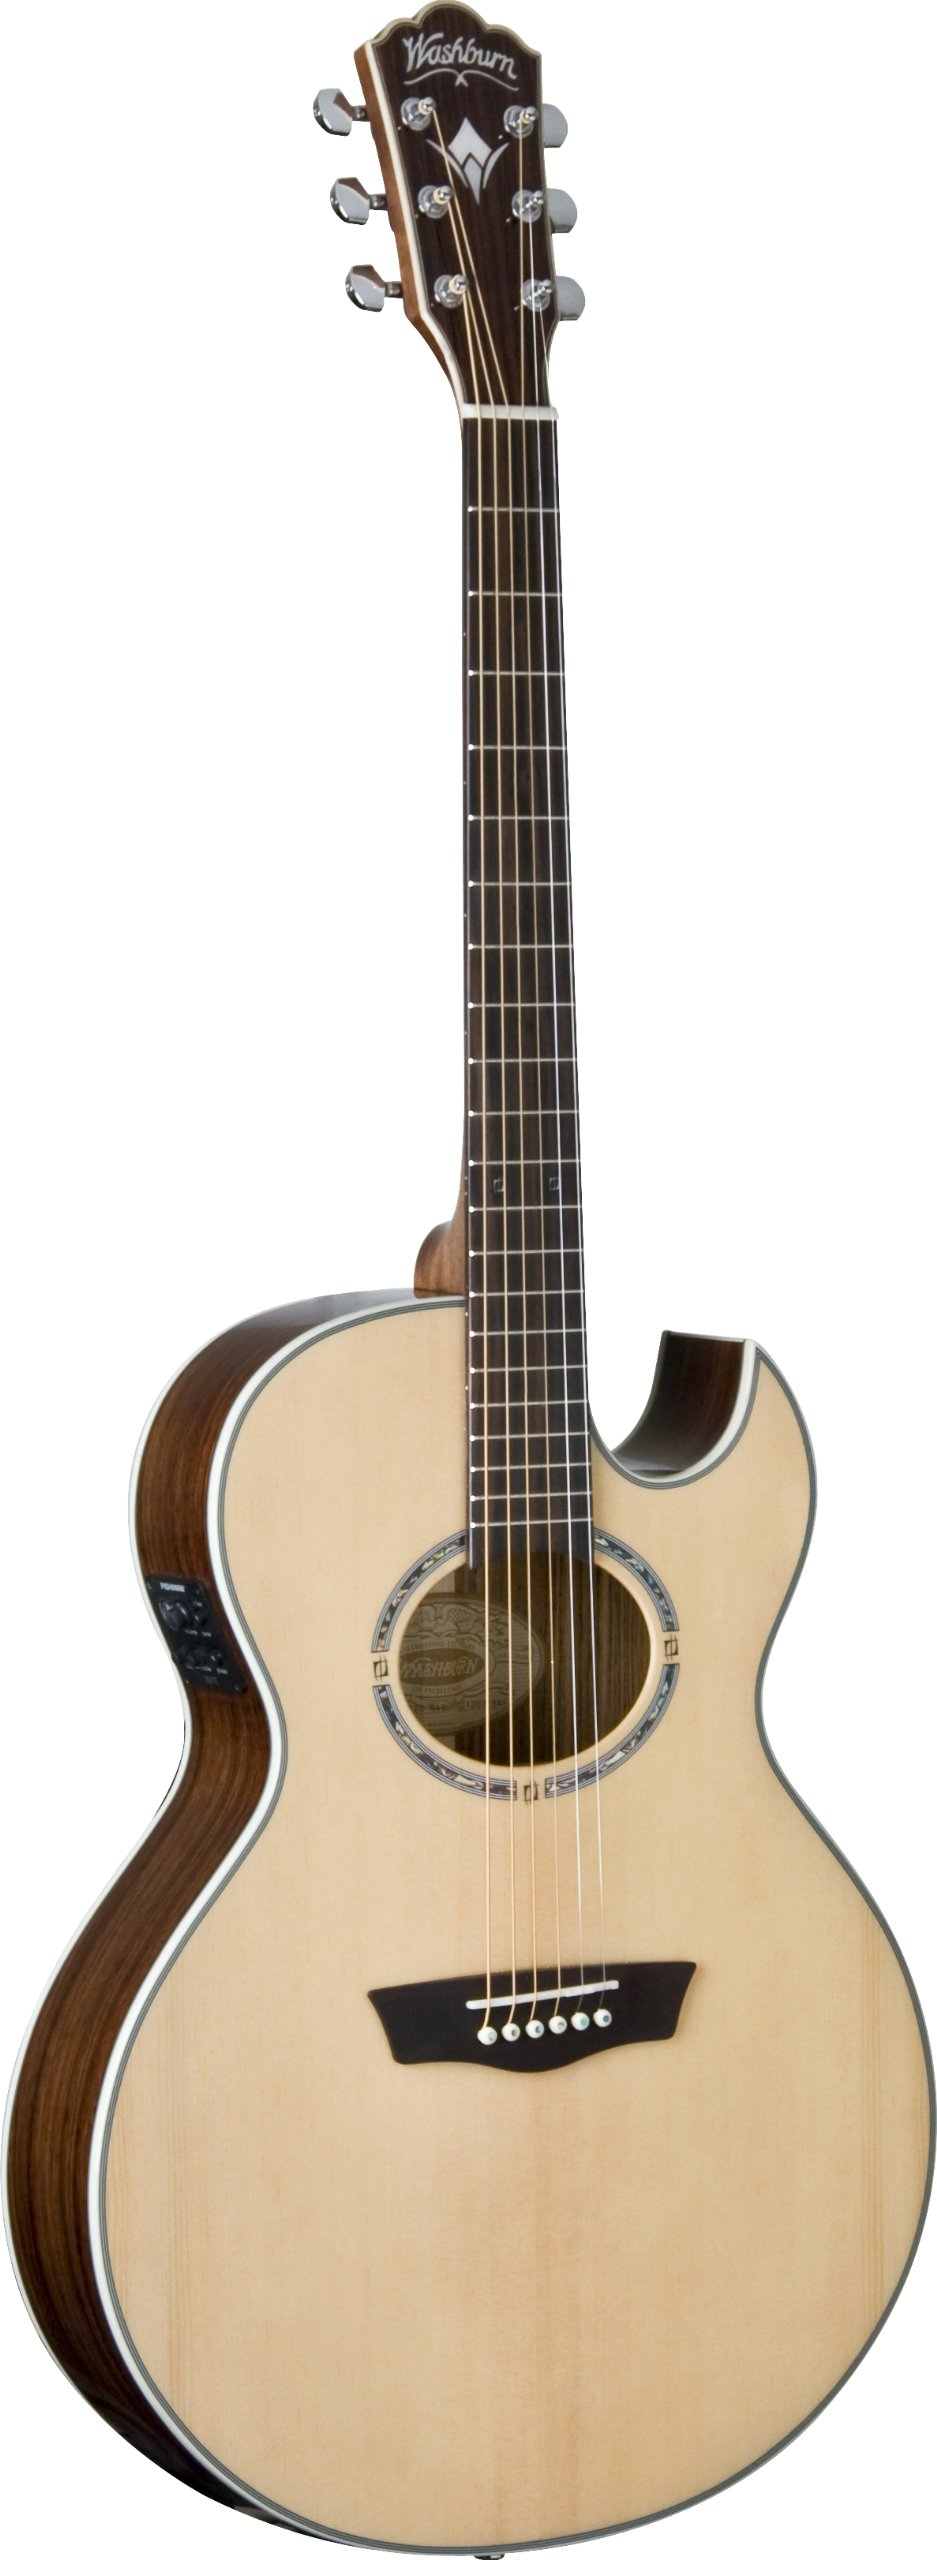 Washburn USM-EA20SNB Nuno Signature Series Acoustic Electric Guitar, Natural by Washburn